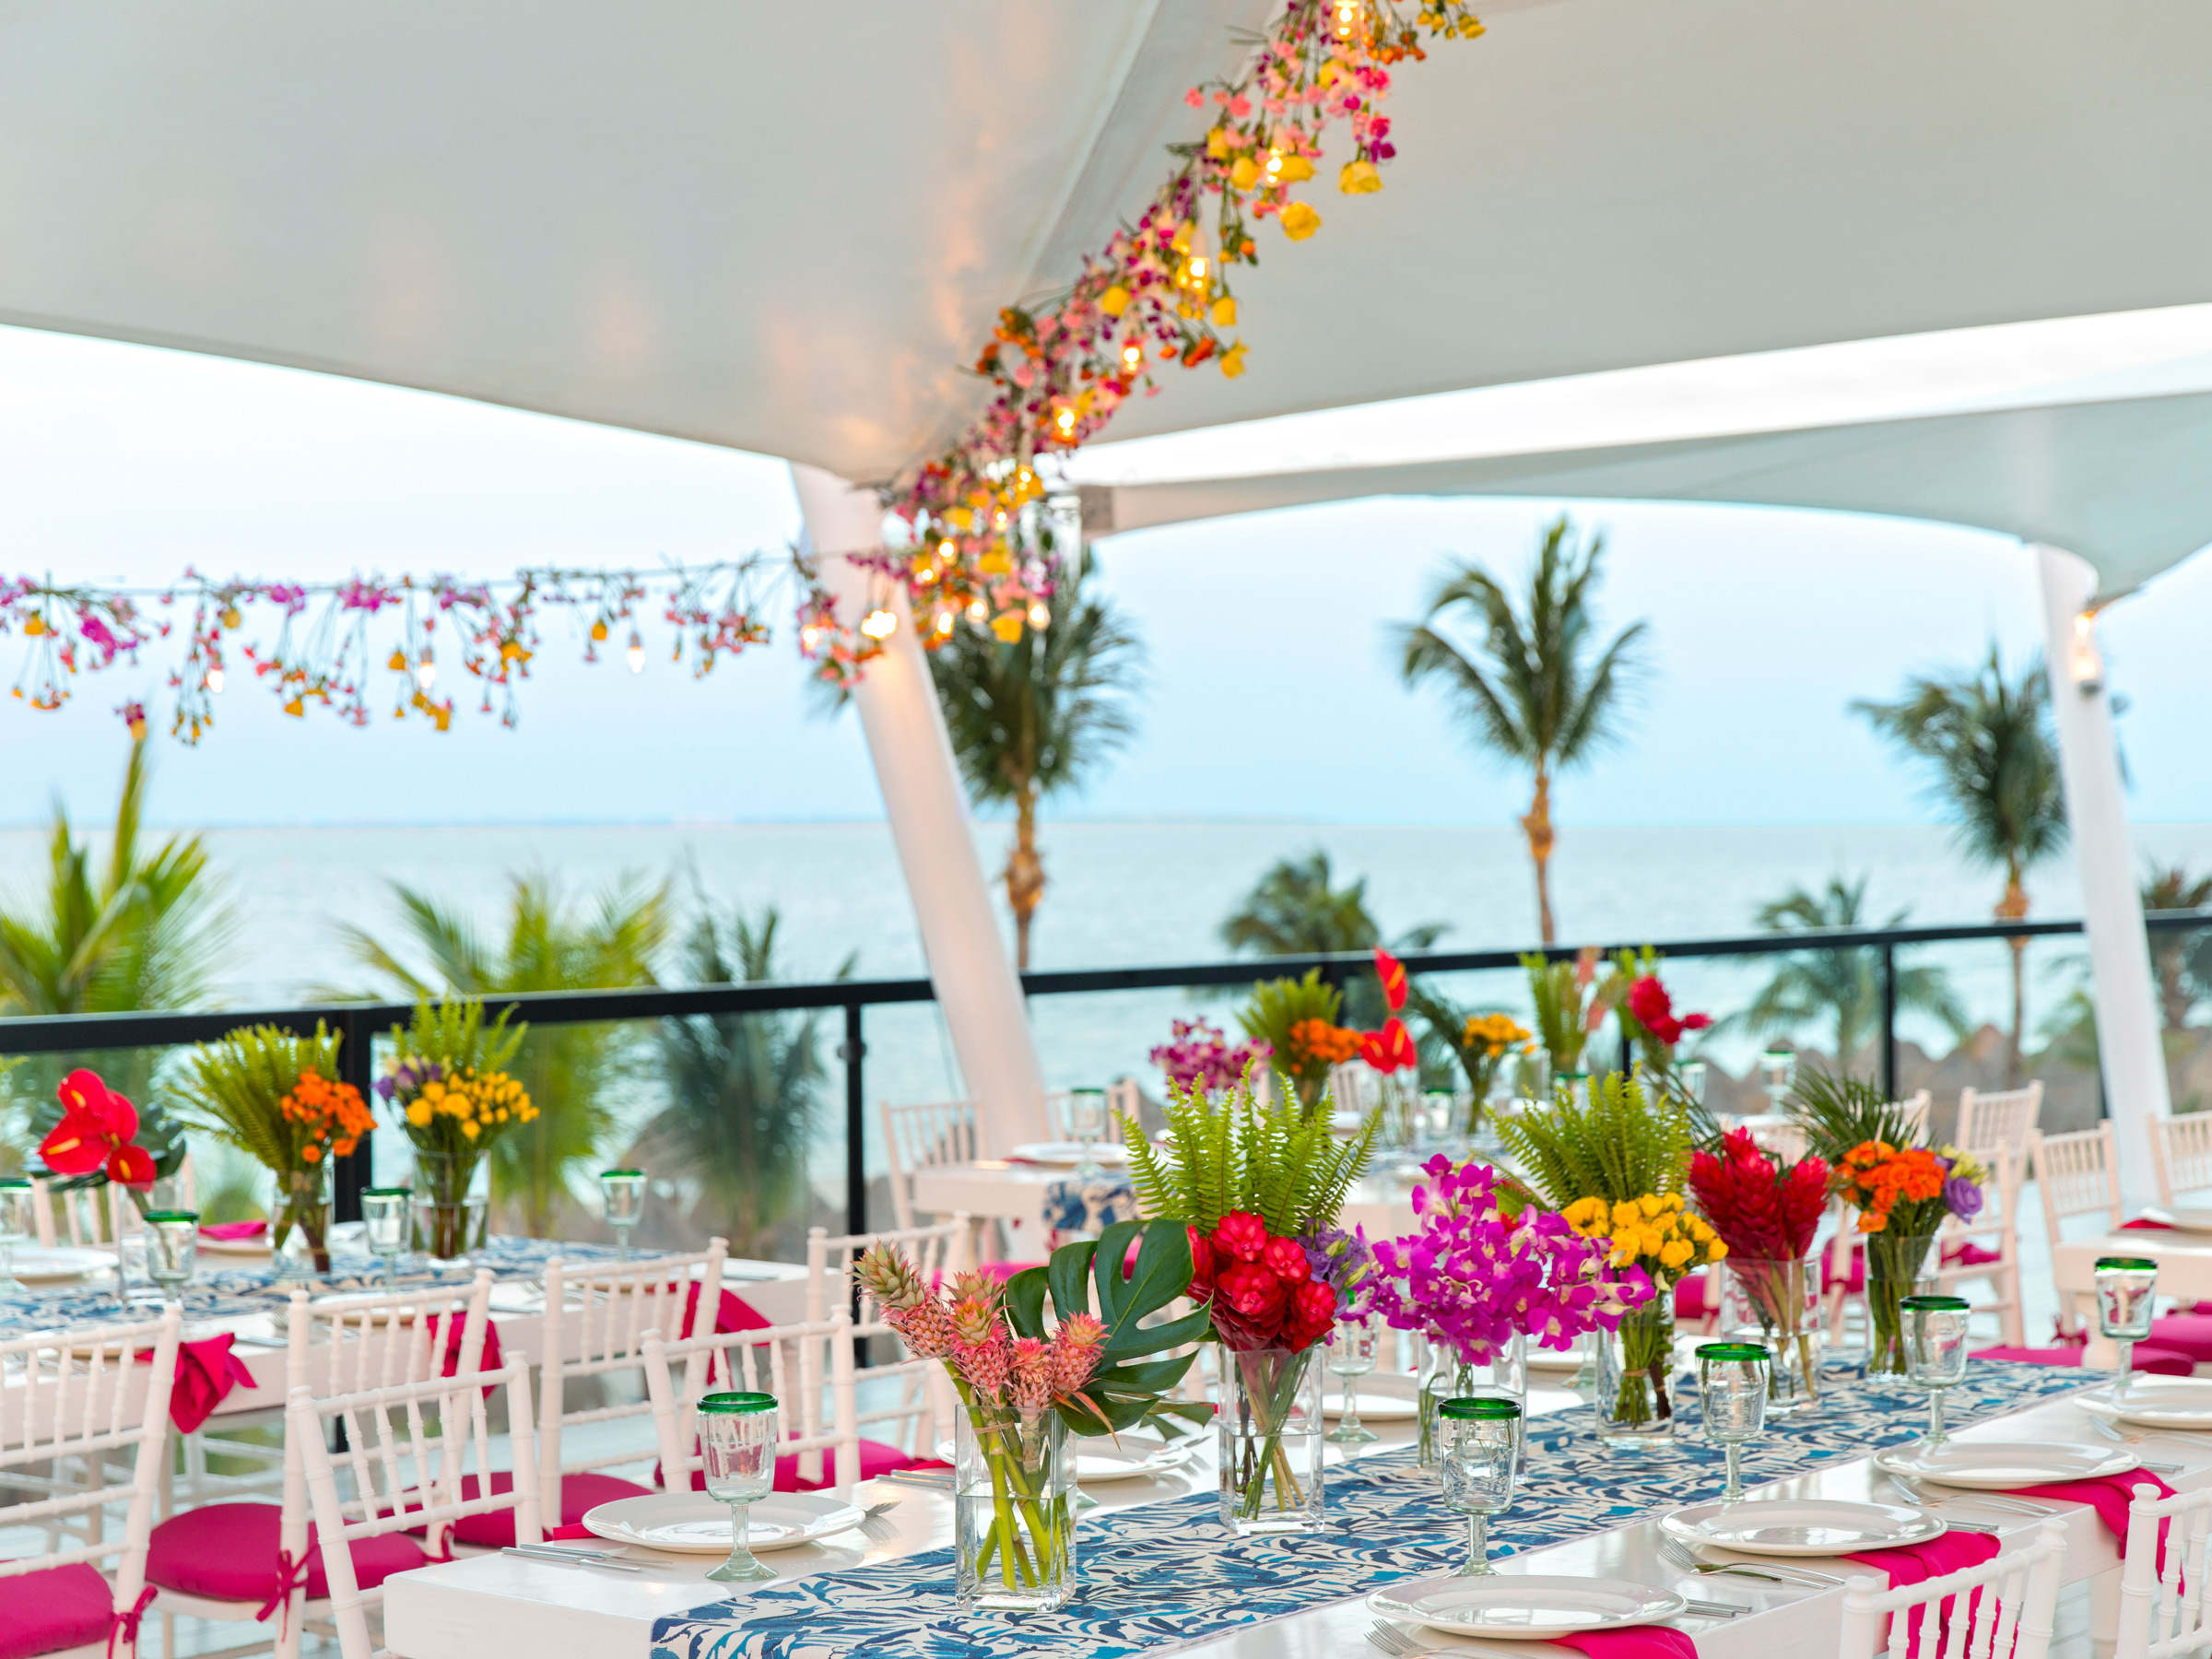 Choose Your Ideal Cancun Wedding Package at Finest Playa Mujeres